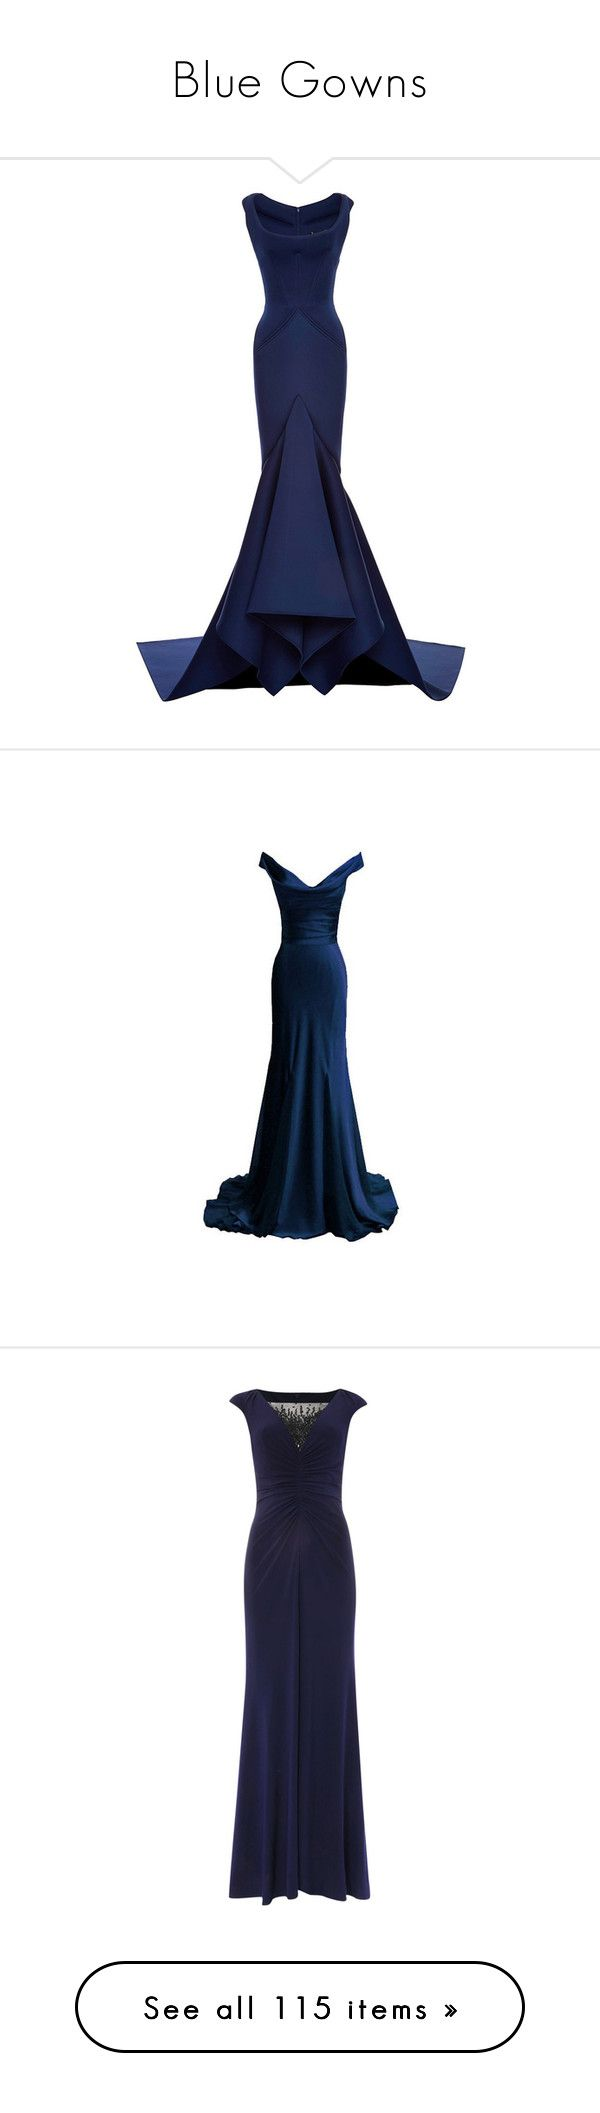 """""""Blue Gowns"""" by worldofscatteringflowers ❤ liked on Polyvore featuring dresses, gowns, gown, zac posen, neoprene dress, zac posen gowns, white flared dress, white gown, white flare dress and long dresses"""